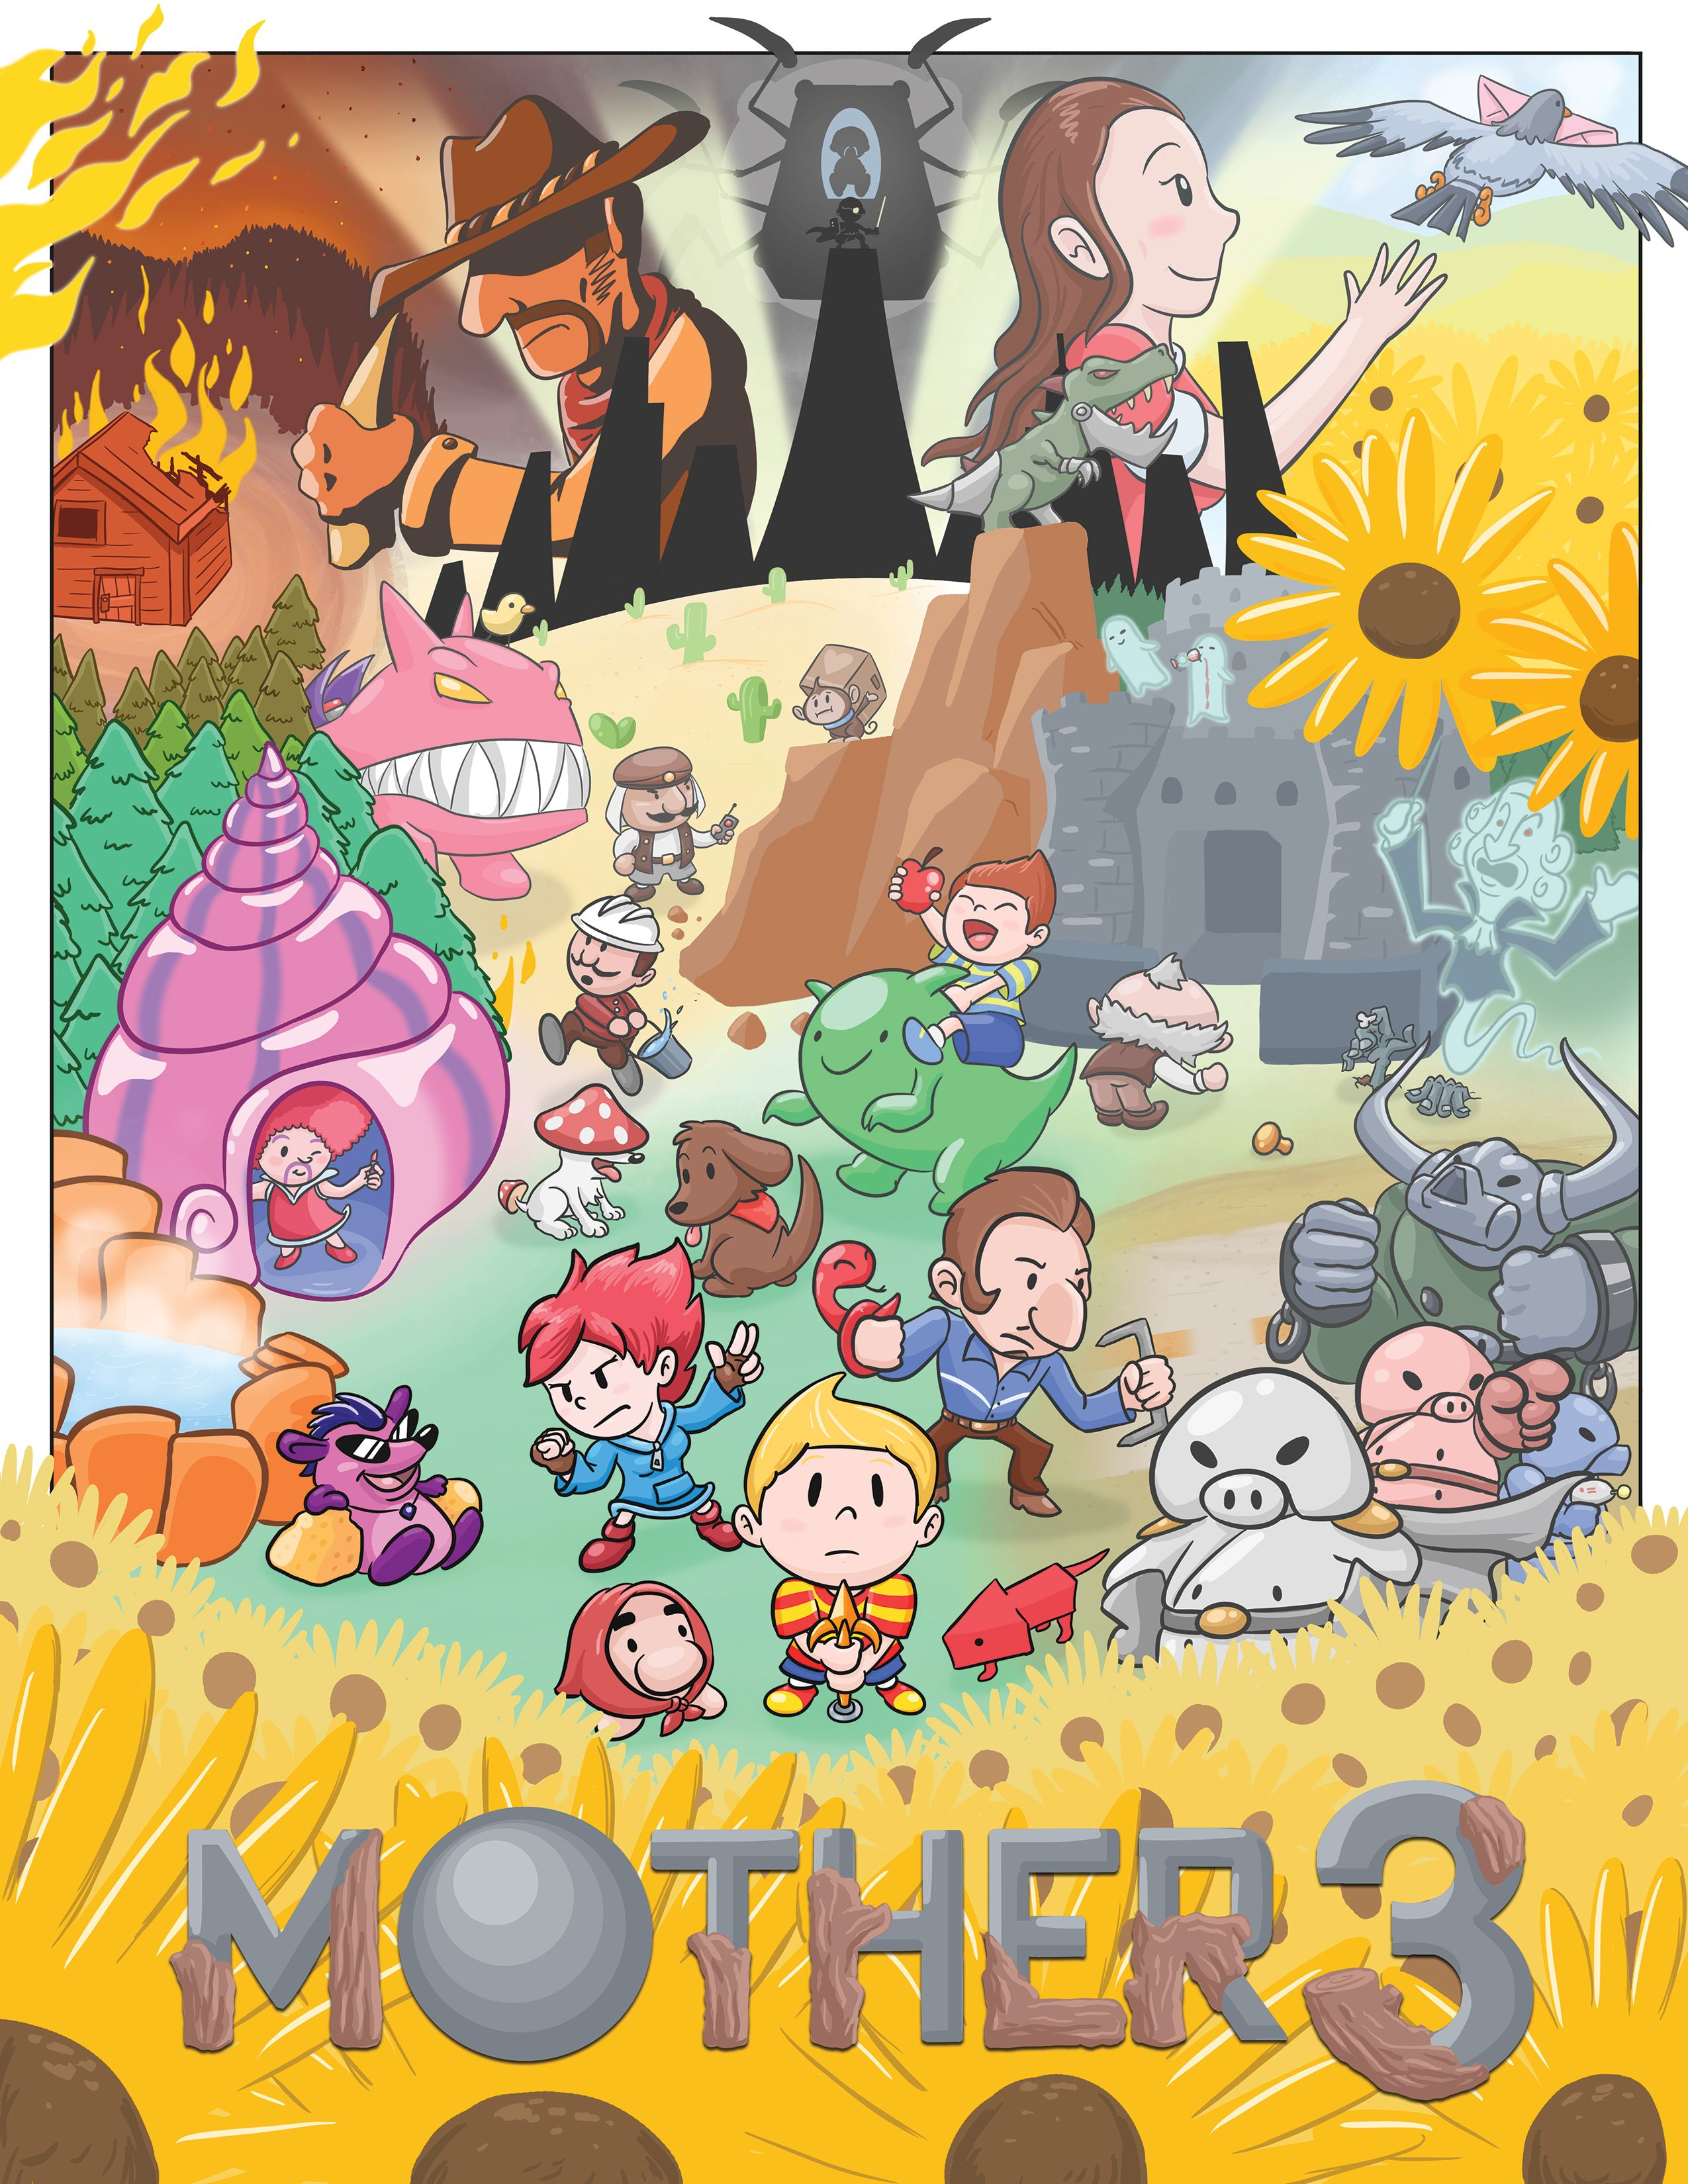 Issue #21's Poster Revealed! | Nintendo | Nintendo, Videogames